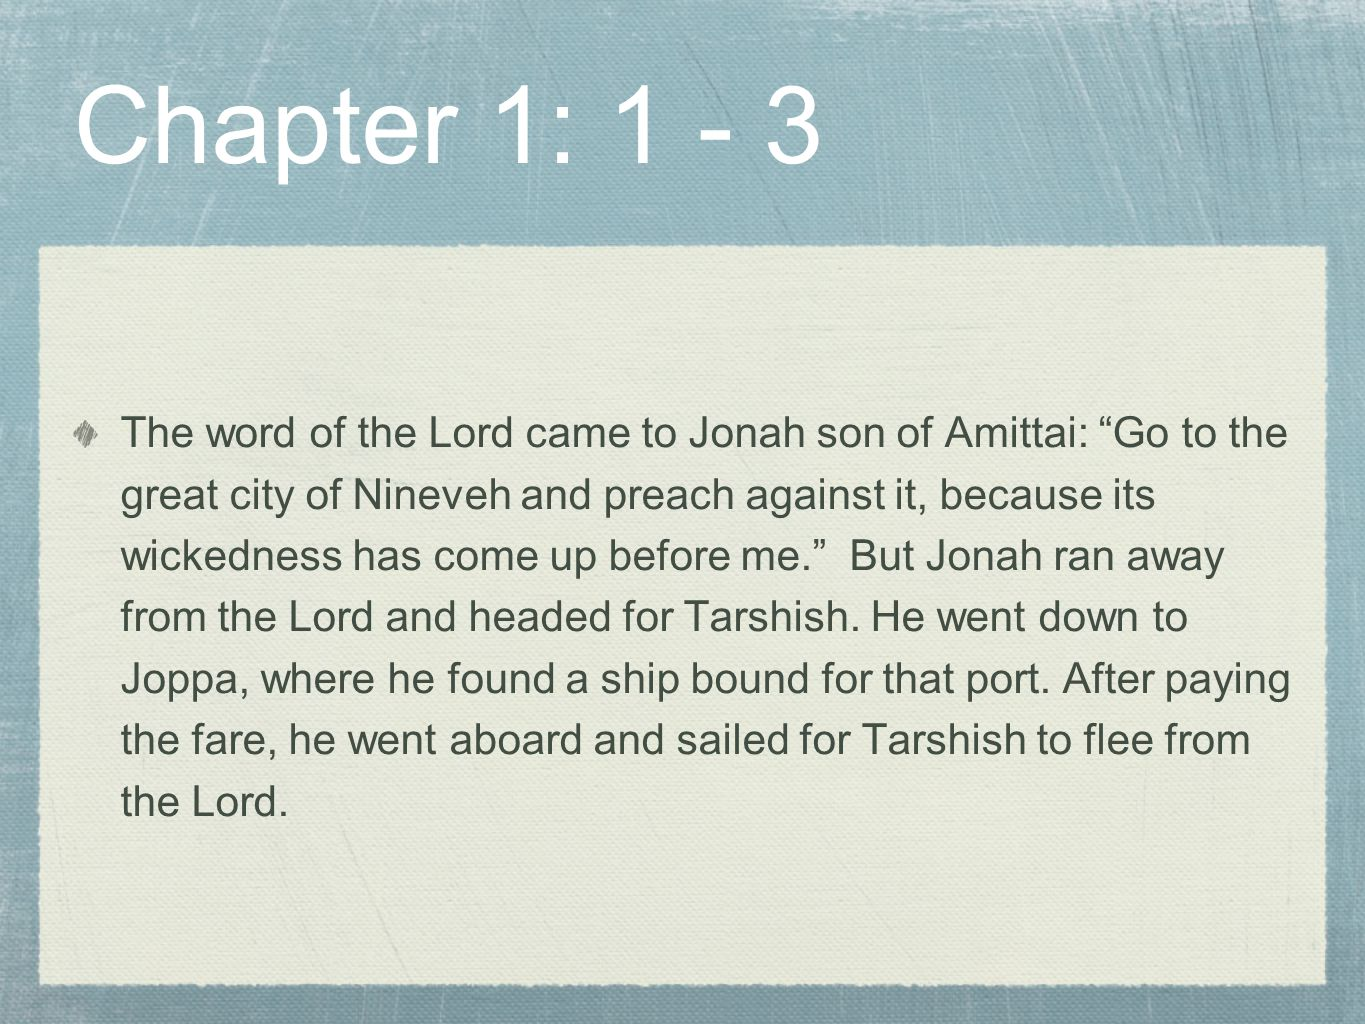 Chapter 1: 1 - 3 The word of the Lord came to Jonah son of Amittai: Go to the great city of Nineveh and preach against it, because its wickedness has come up before me. But Jonah ran away from the Lord and headed for Tarshish.